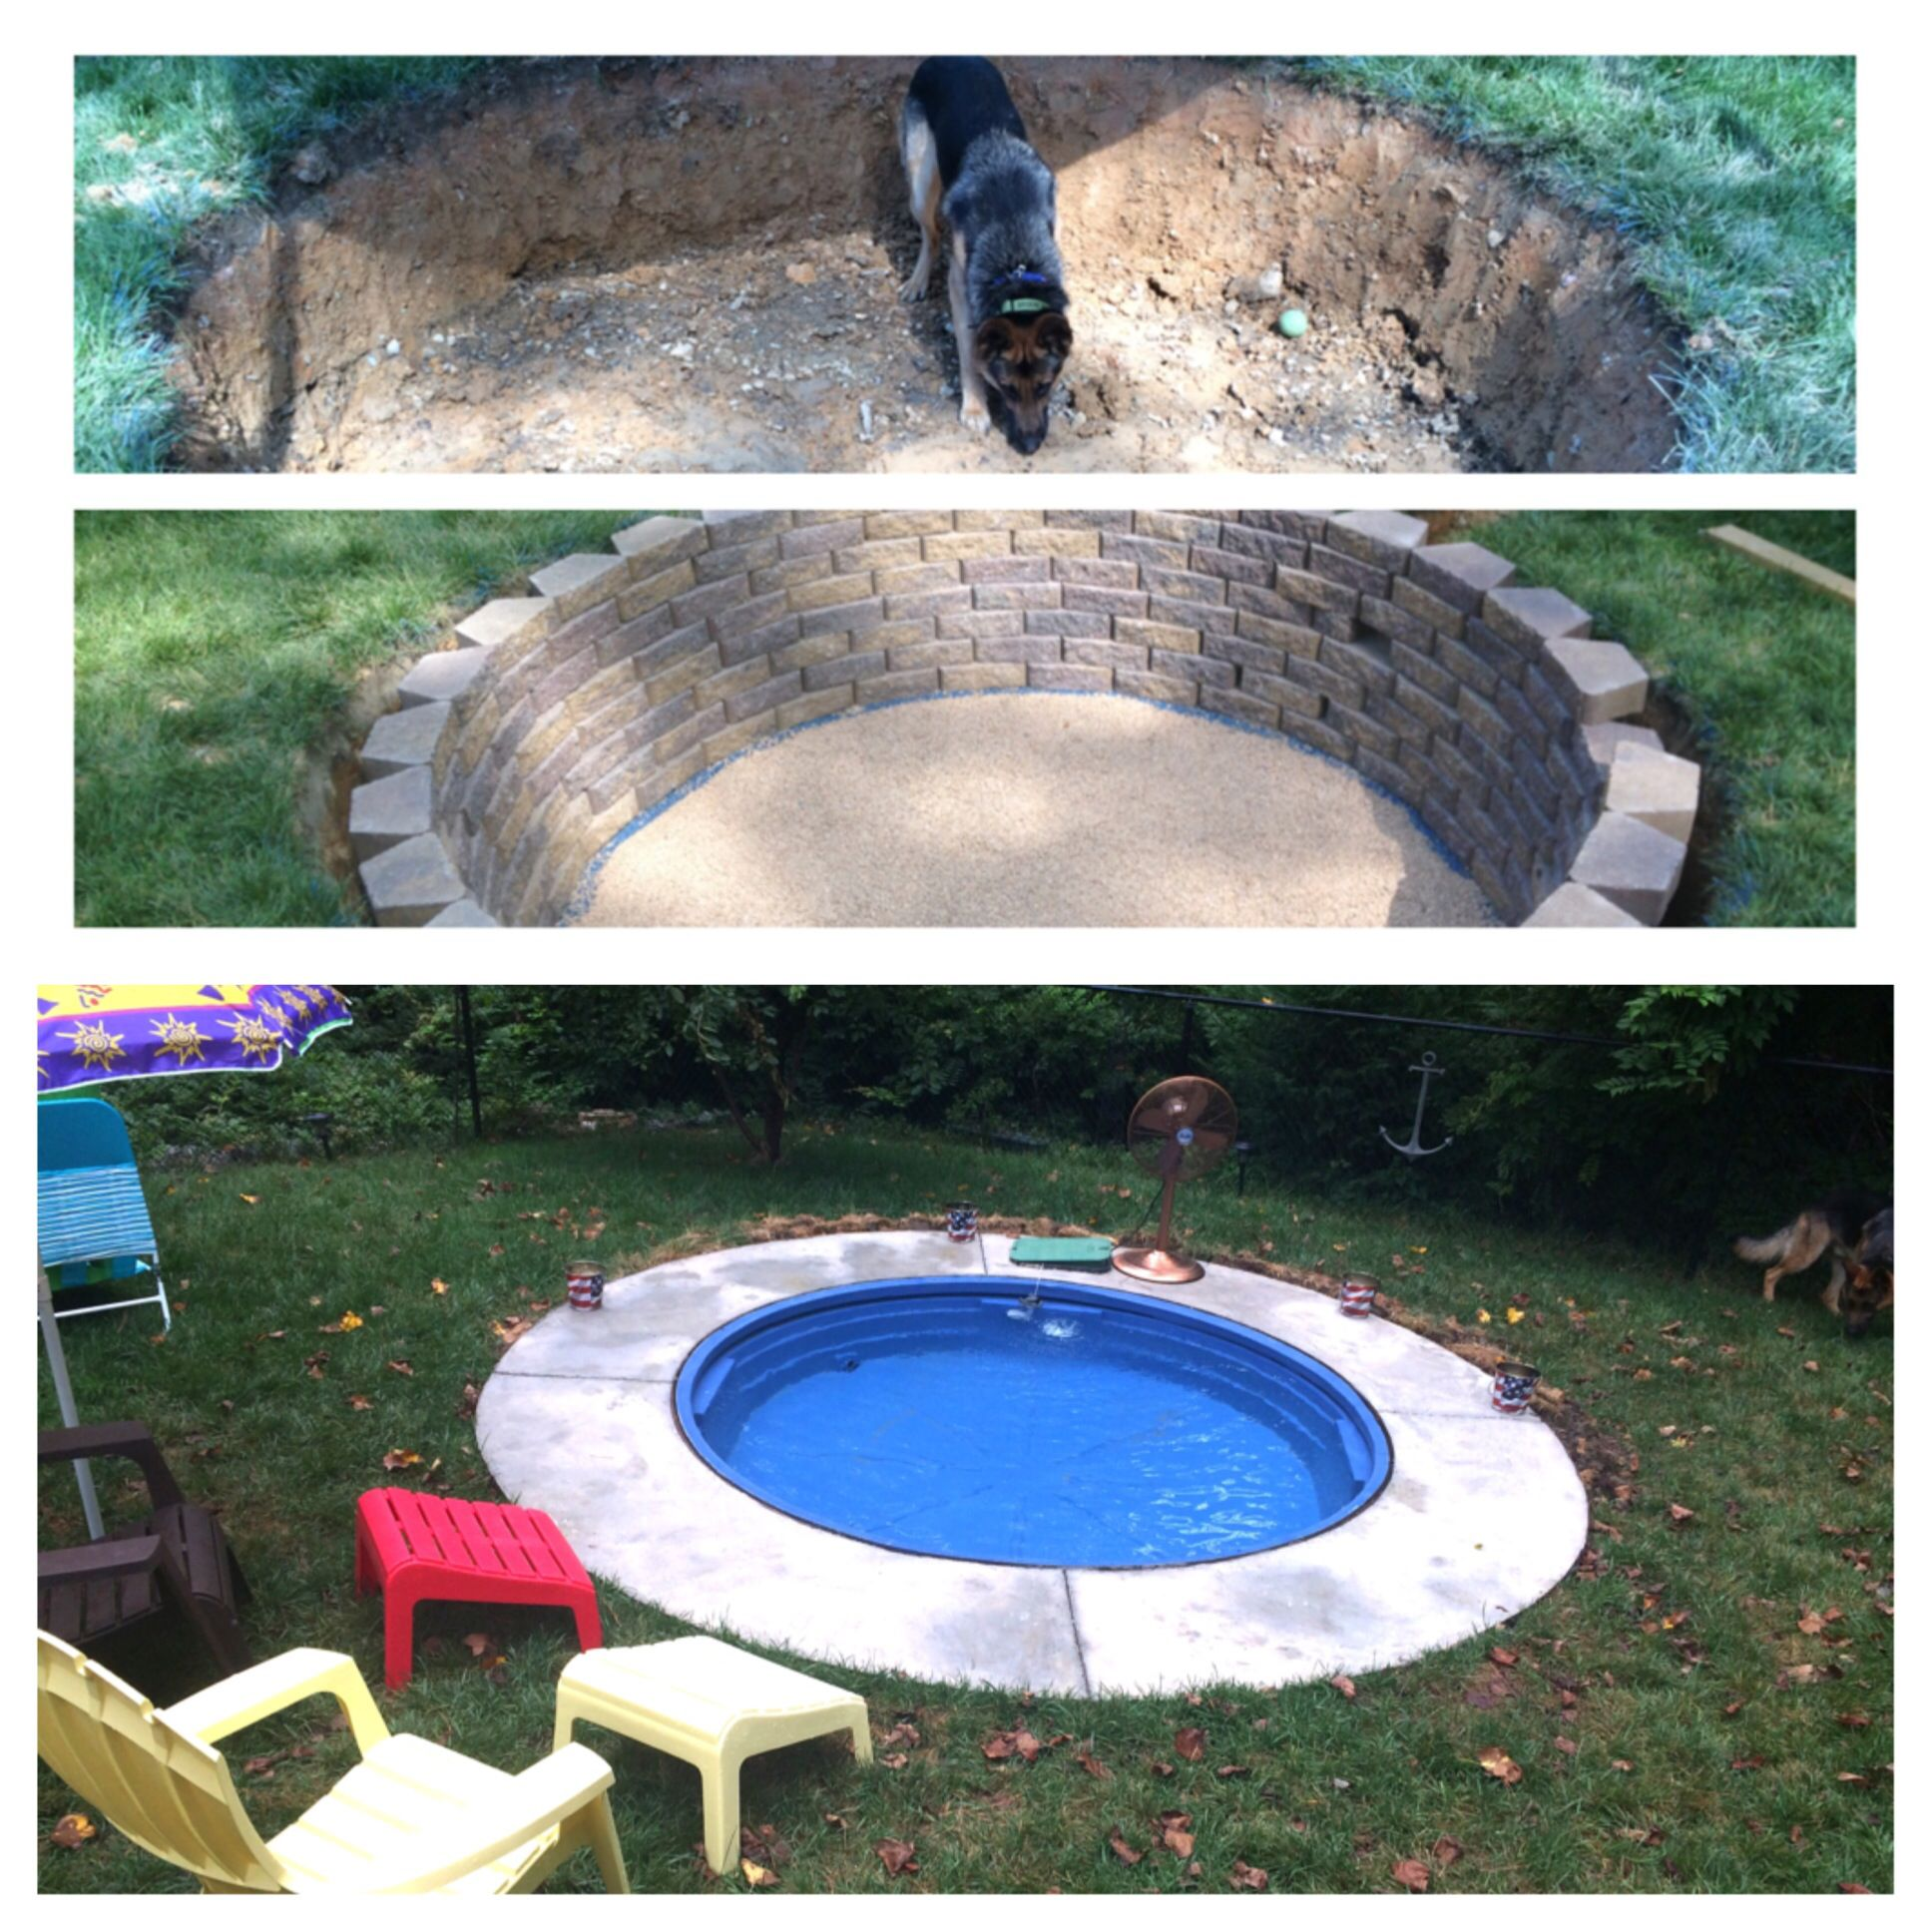 Mini pool build using a stock tank from tractor supply for Diy small pool